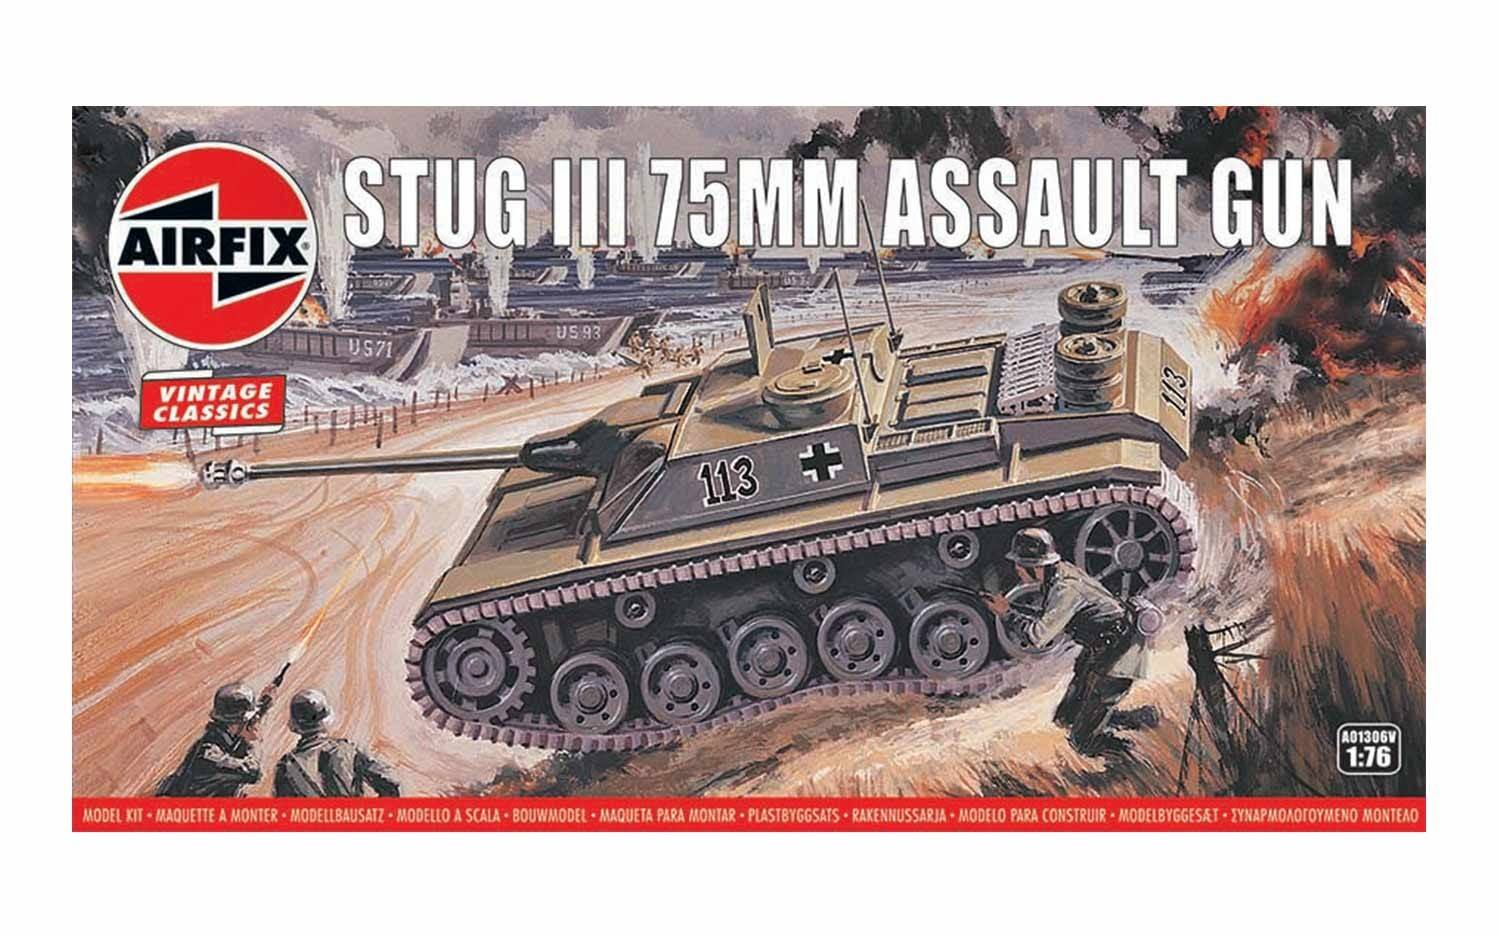 Stug III 75mm Assault Gun